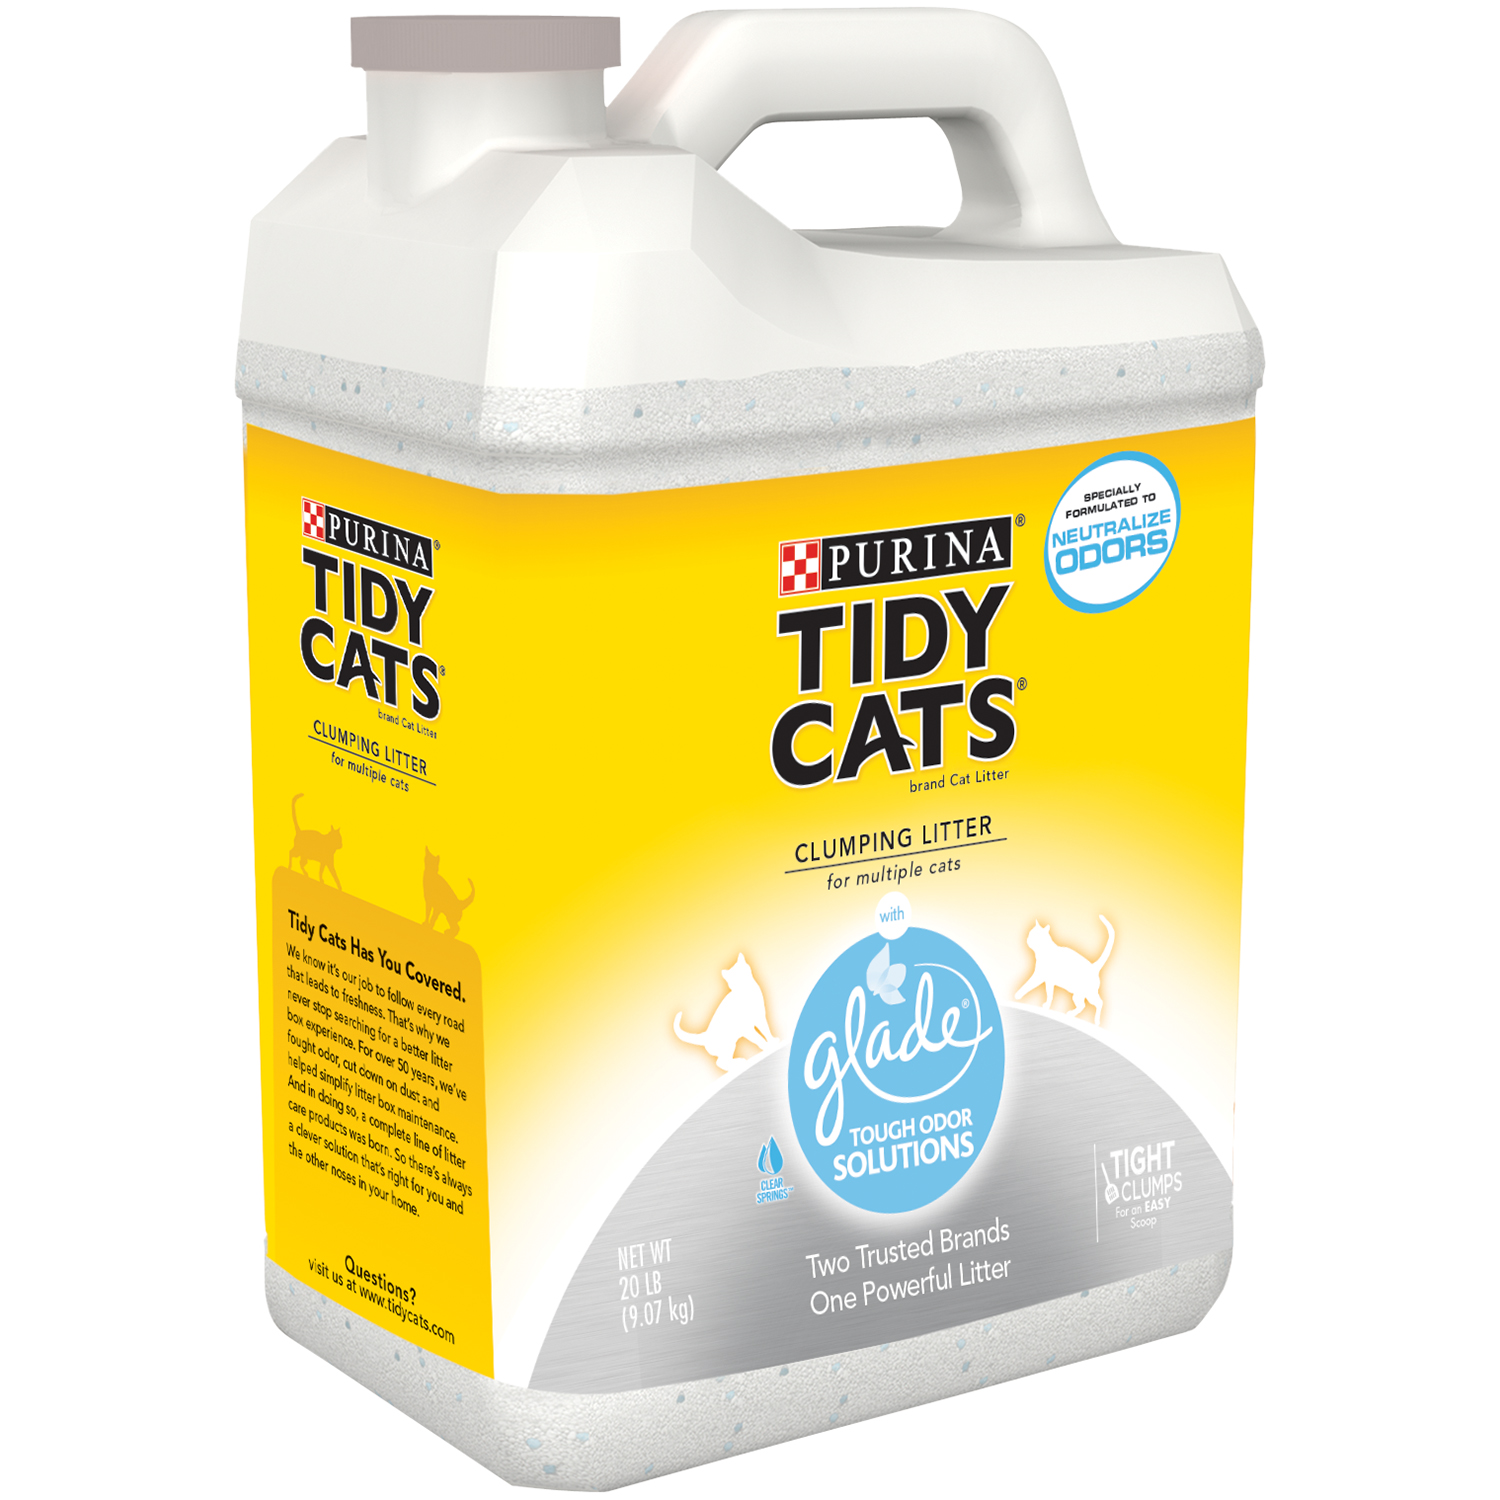 Purina Tidy Cats Clumping Cat Litter with Glade Tough Odor Solutions for Multiple Cats 20 lb. Jug